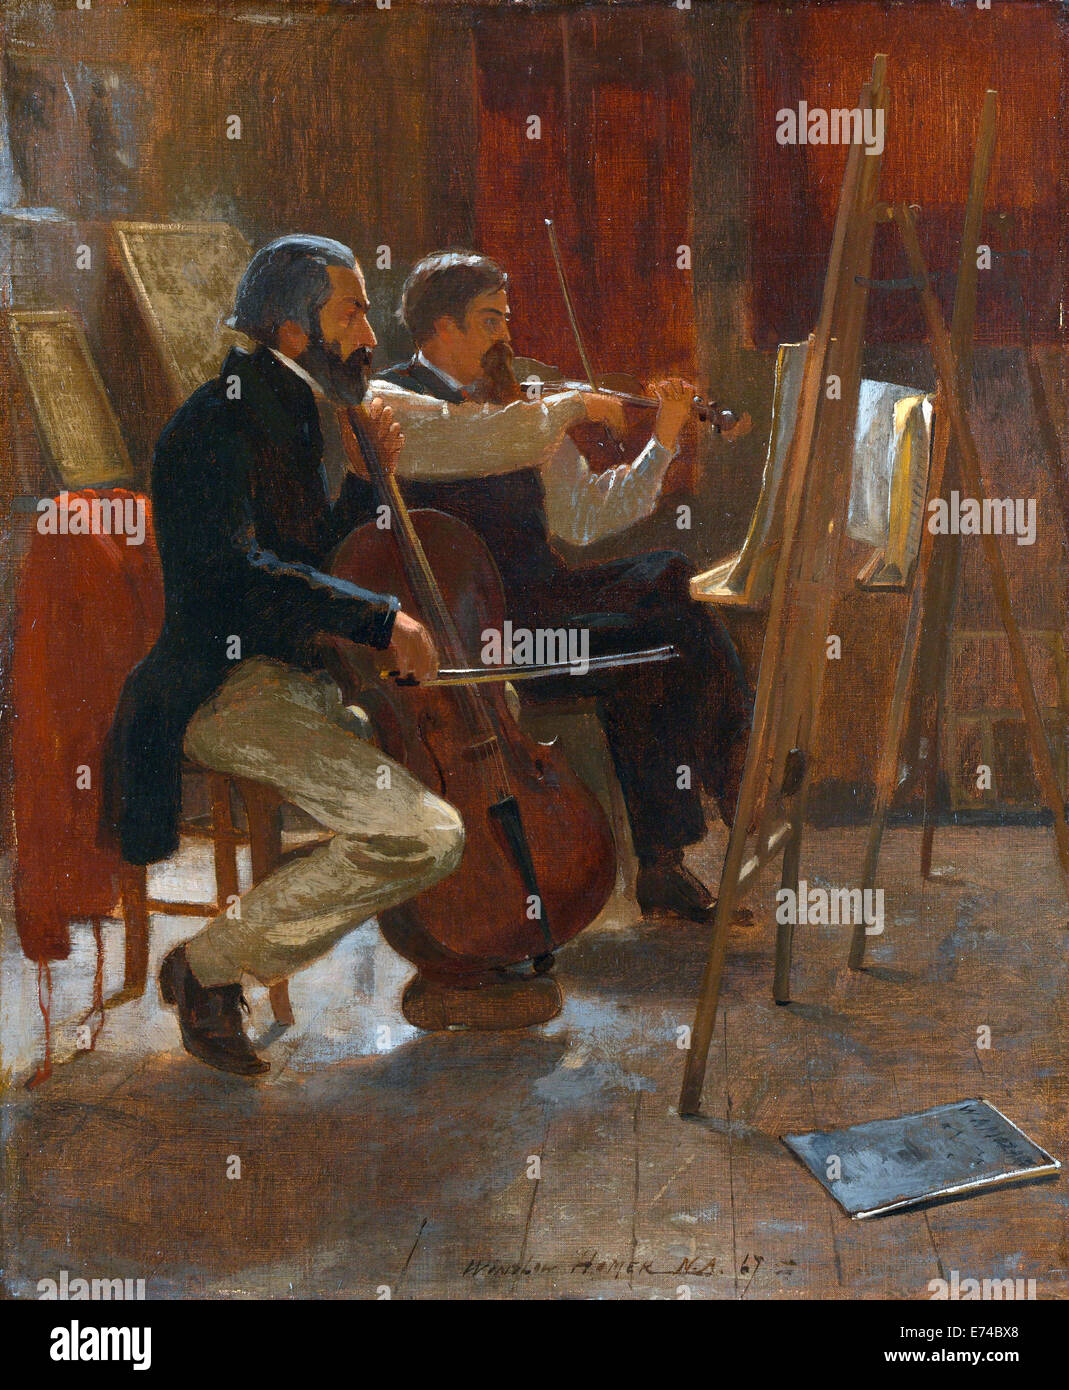 The Studio - by Winslow Homer, 1867 - Stock Image